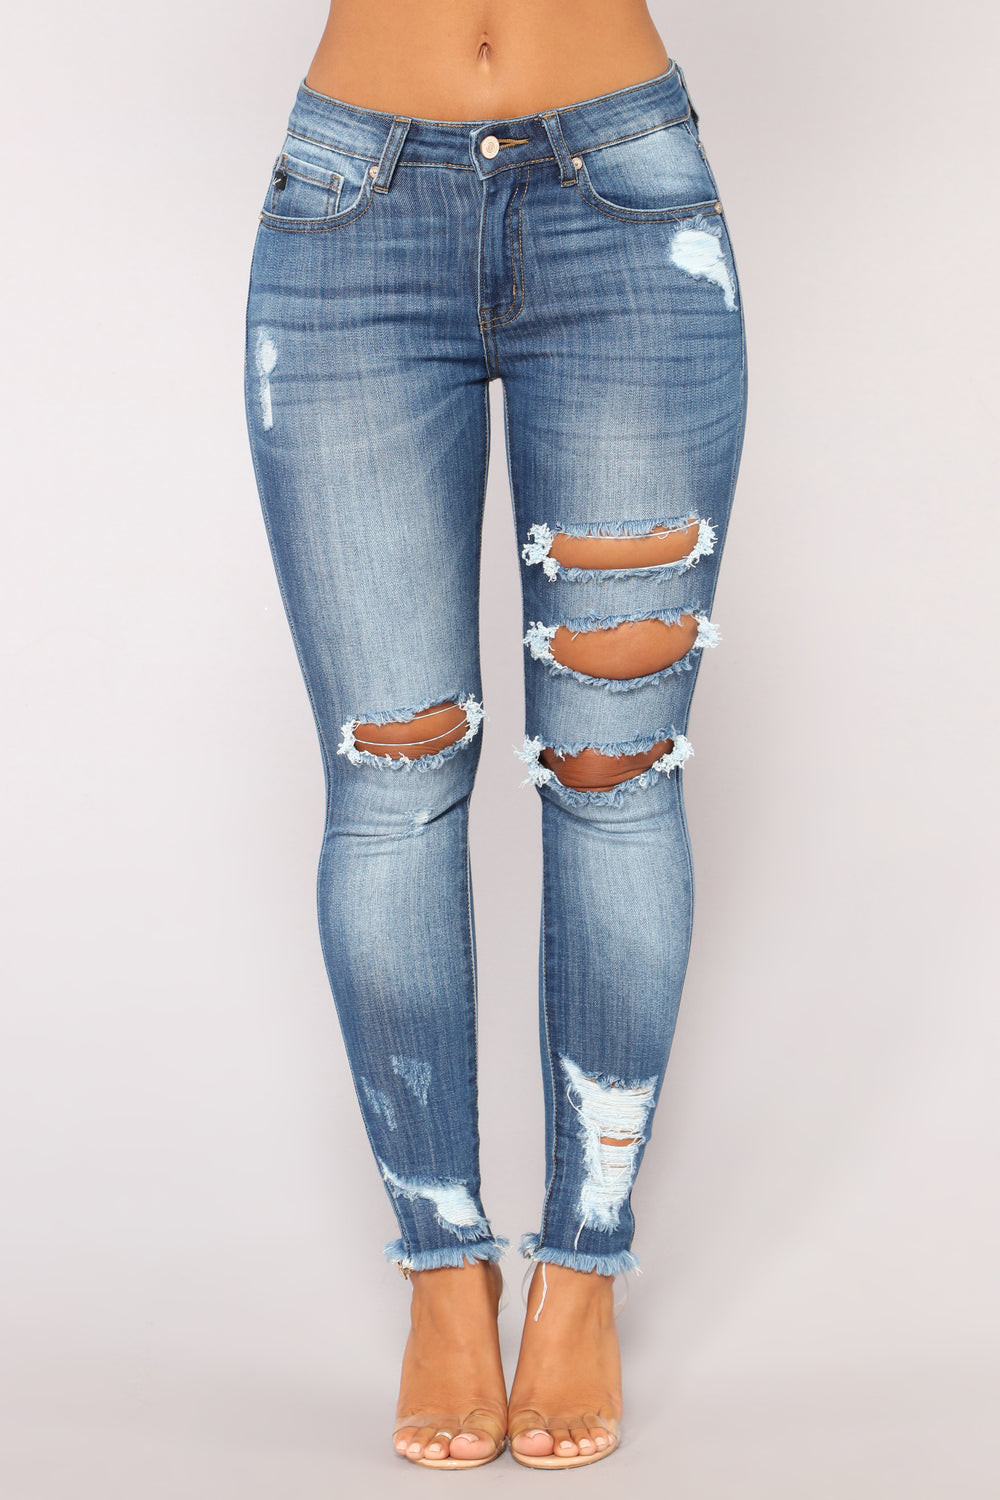 Chicago Distressed Skinny Jeans - Medium Blue Wash